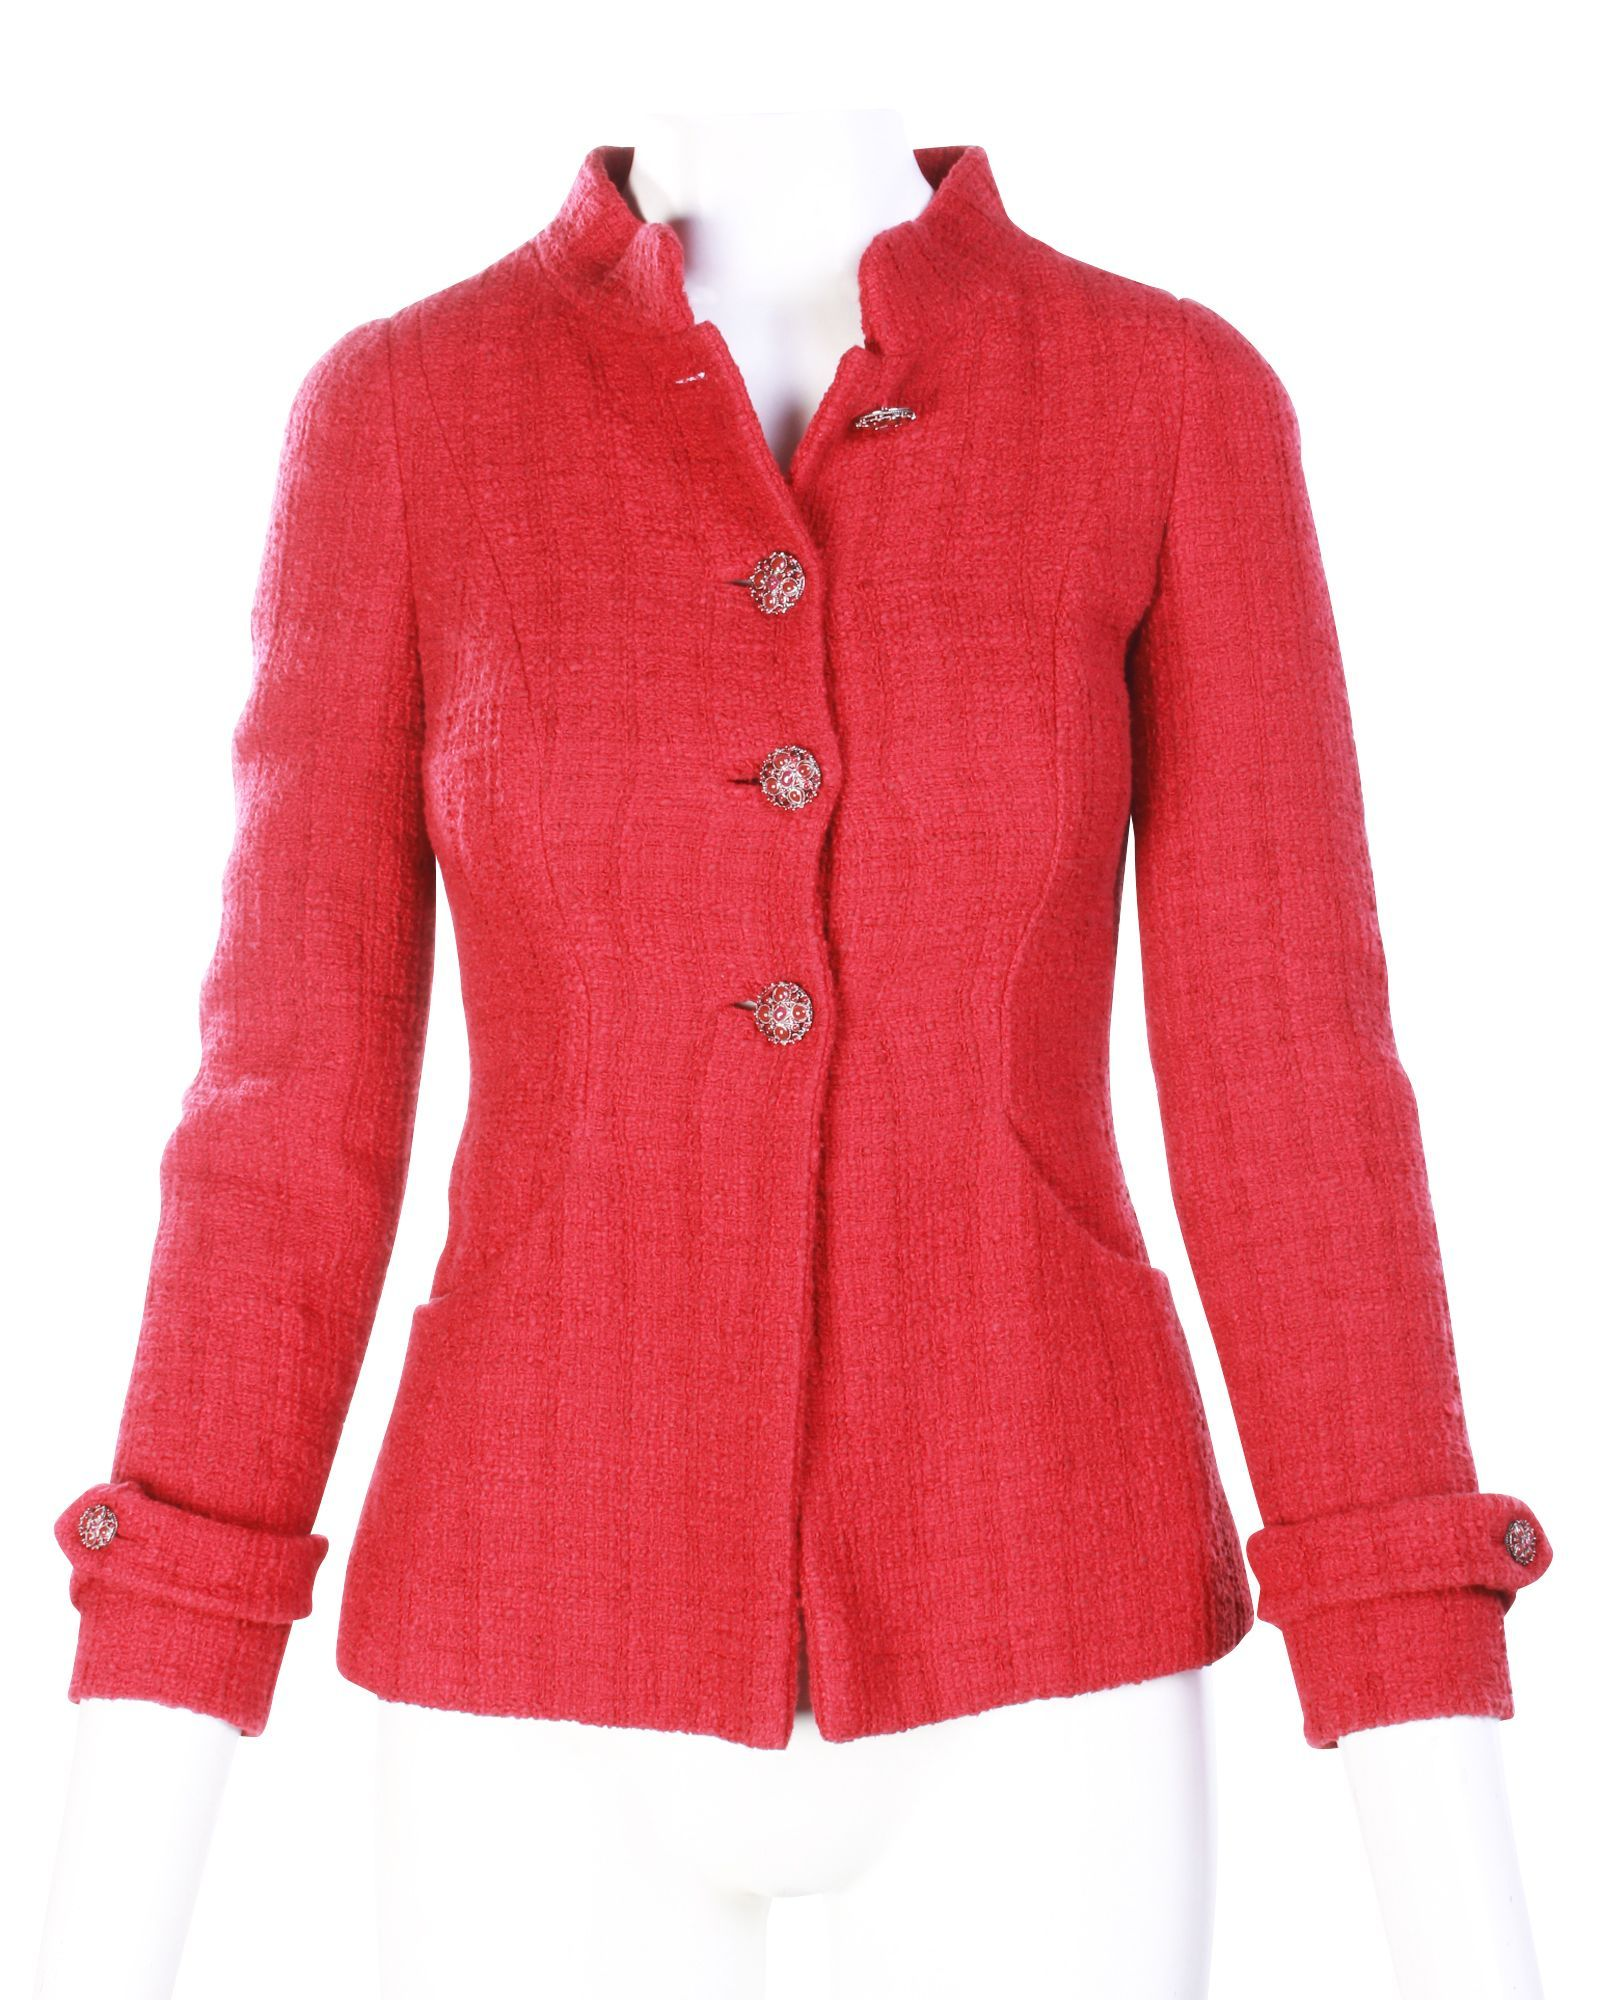 Chanel Red Tweed Jacket -Pre Owned Condition Good